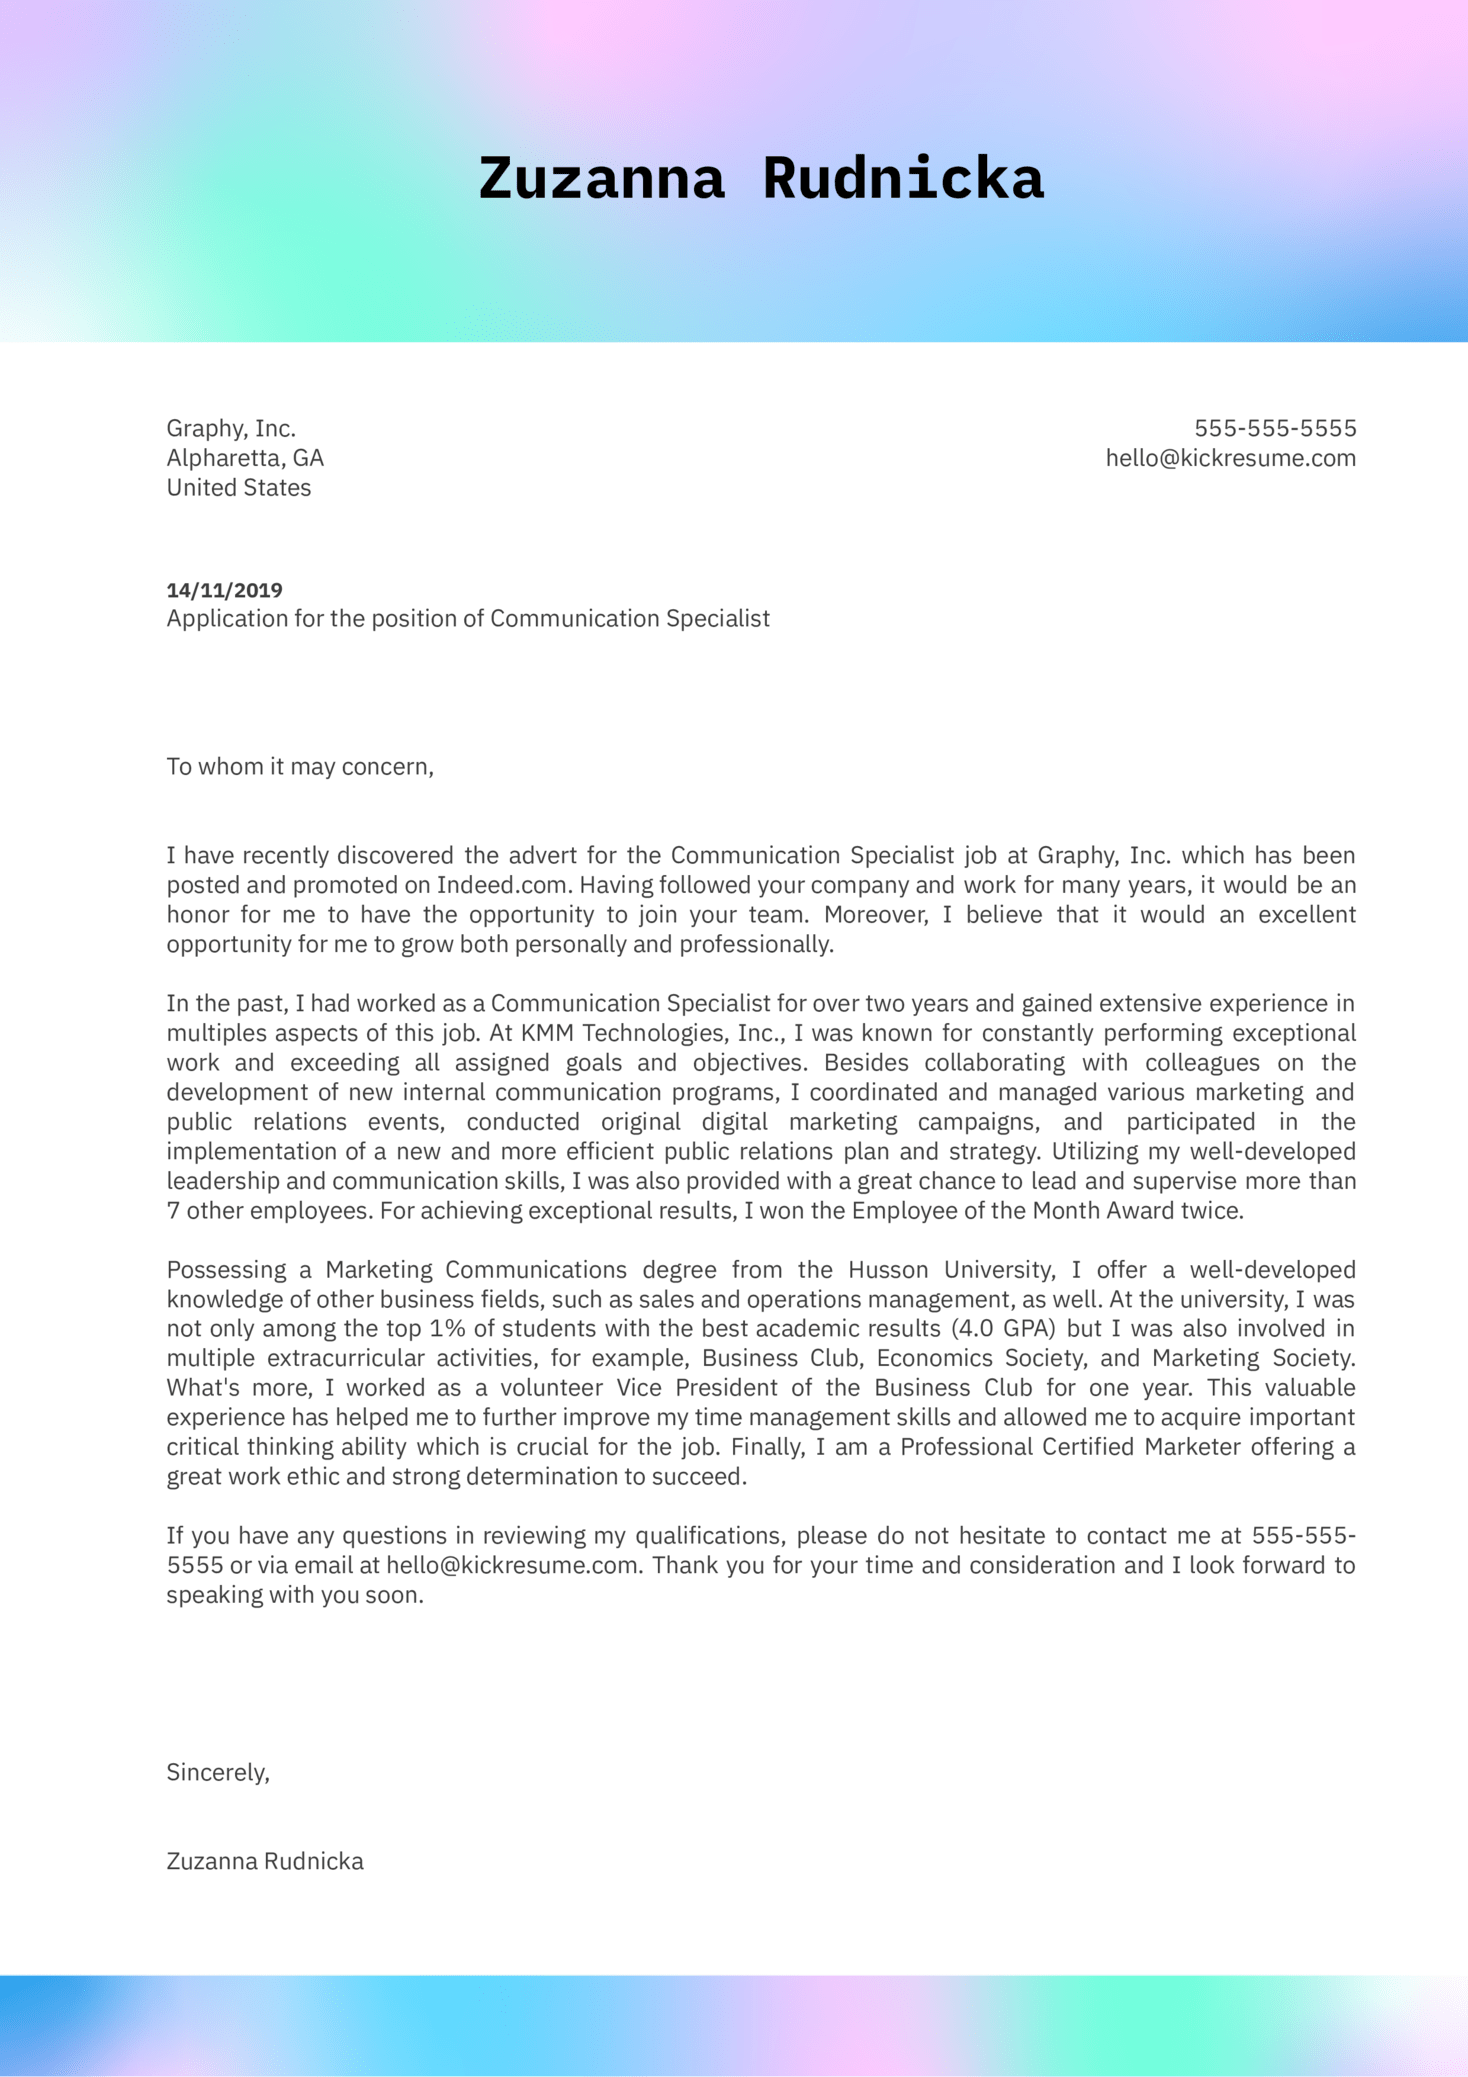 Communication Specialist Cover Letter Sample